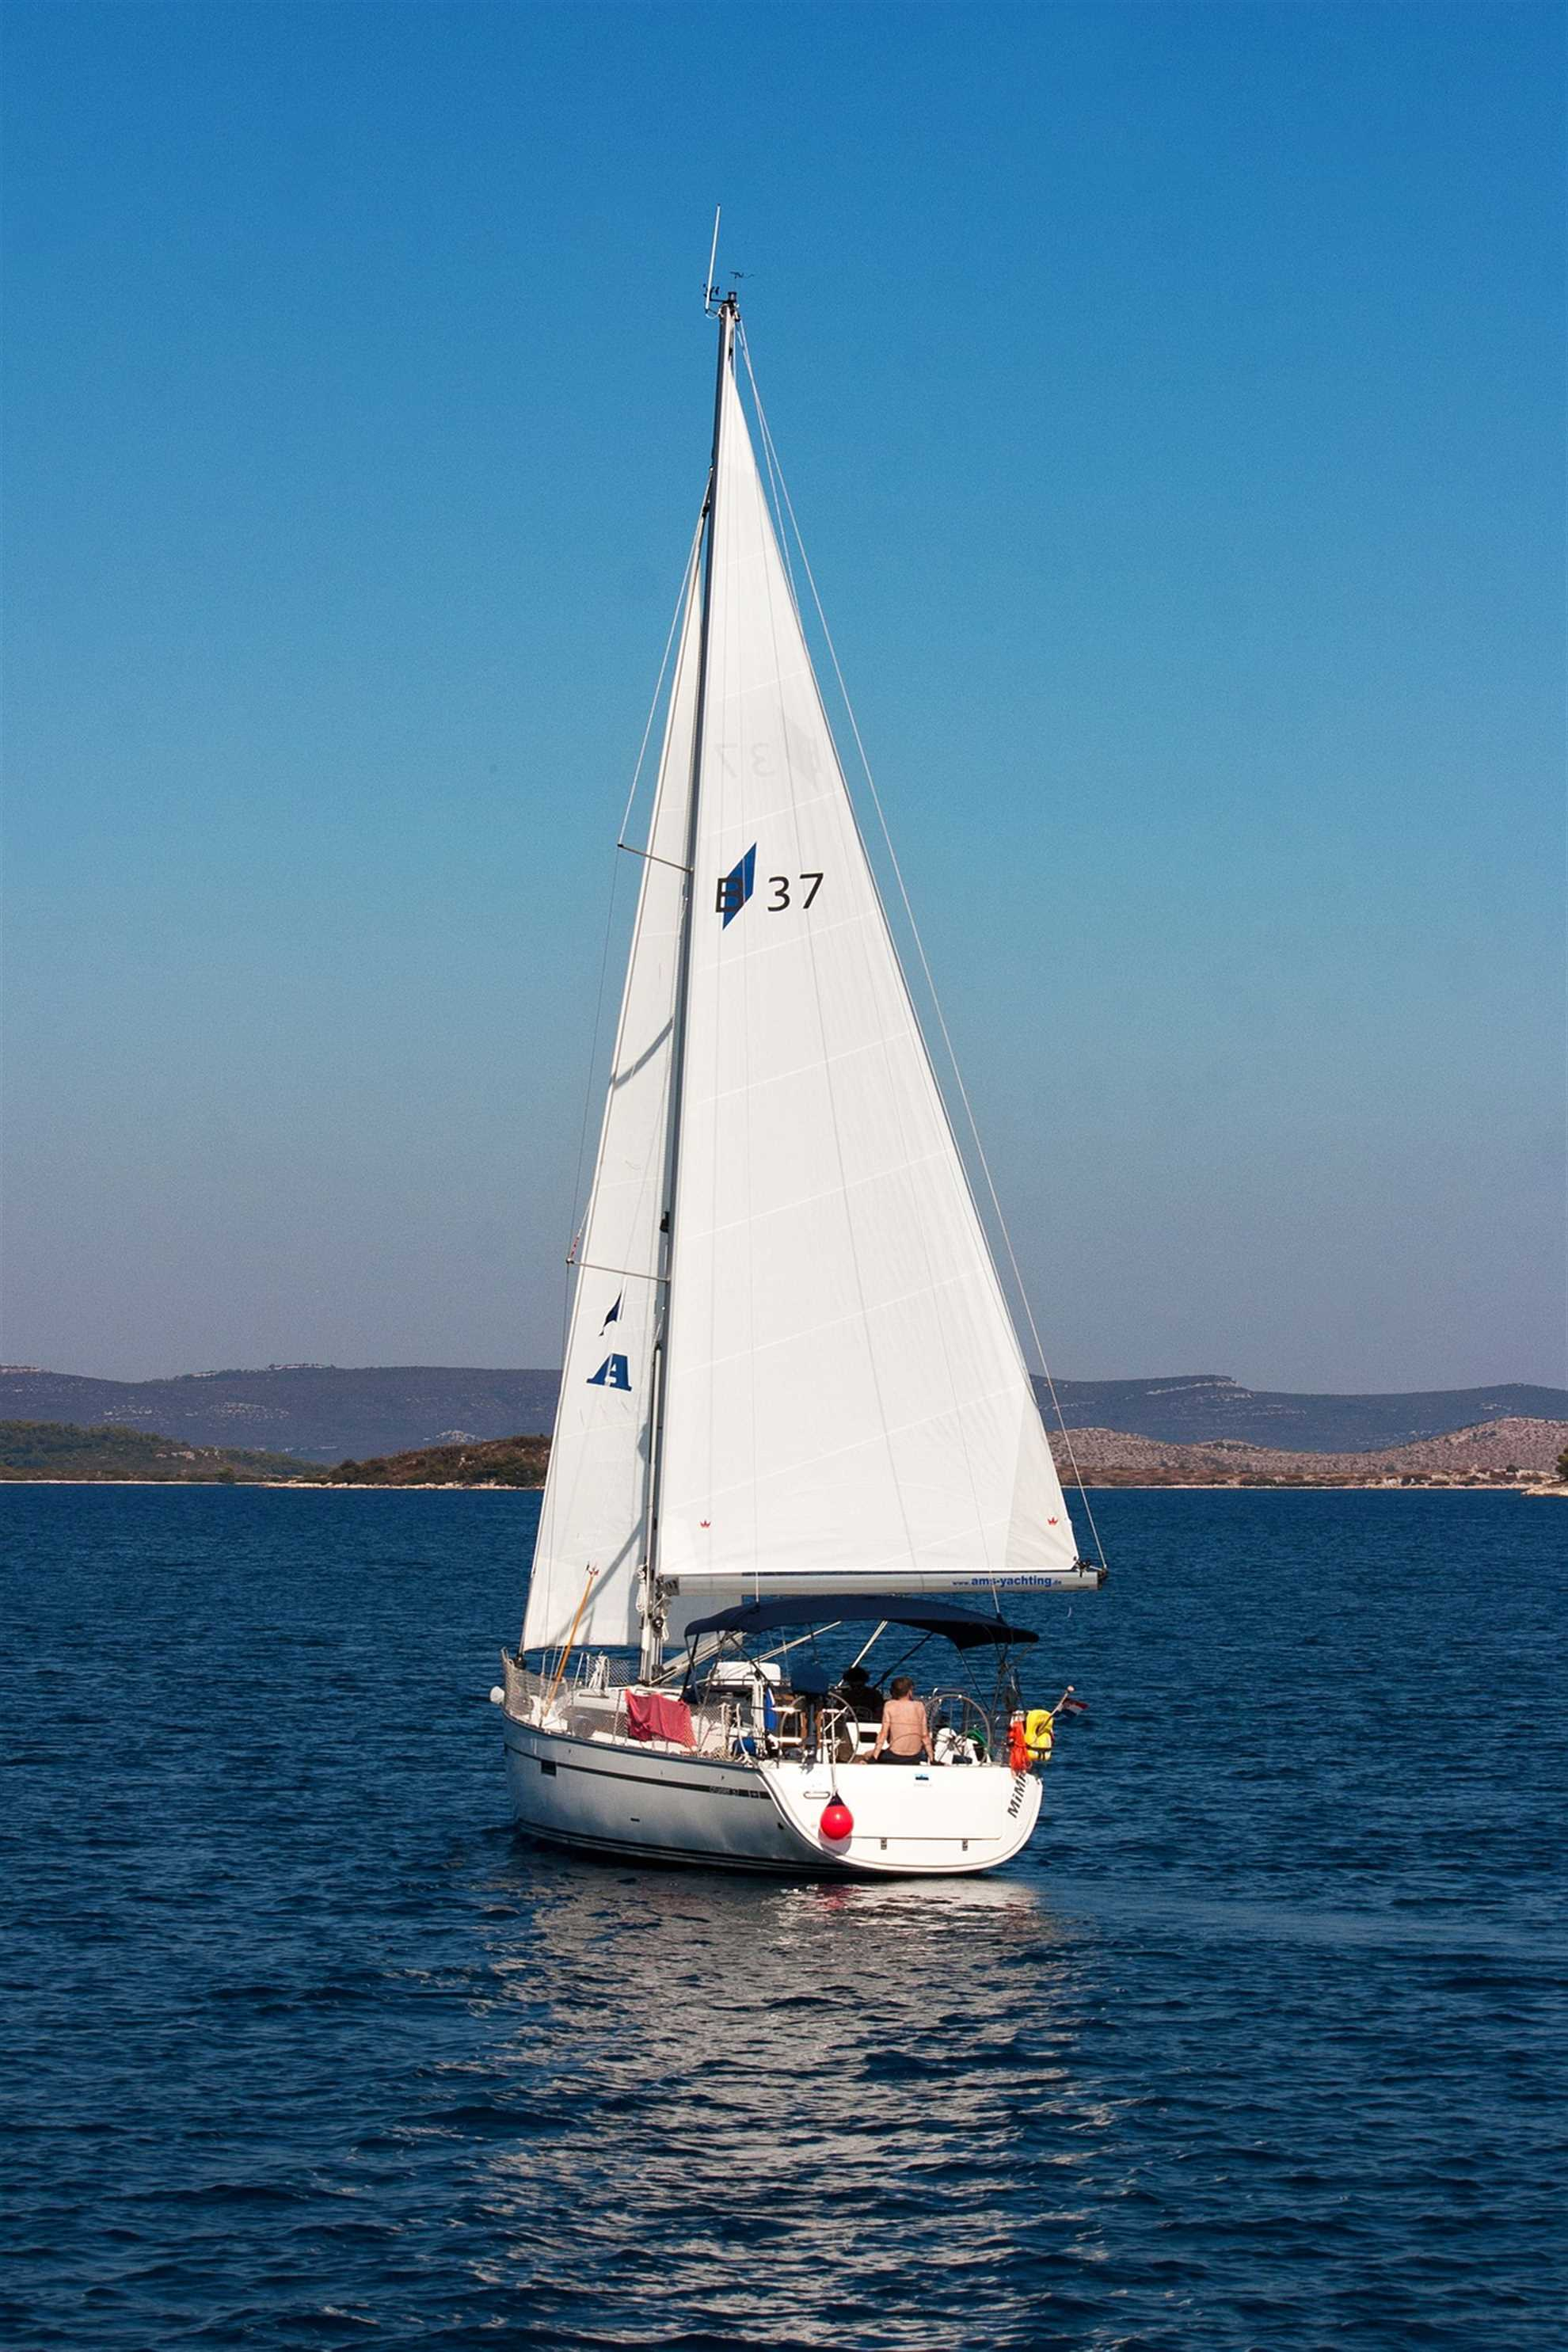 Sailing Boat In Kornati Archipelago, photo by www.pixabay.com